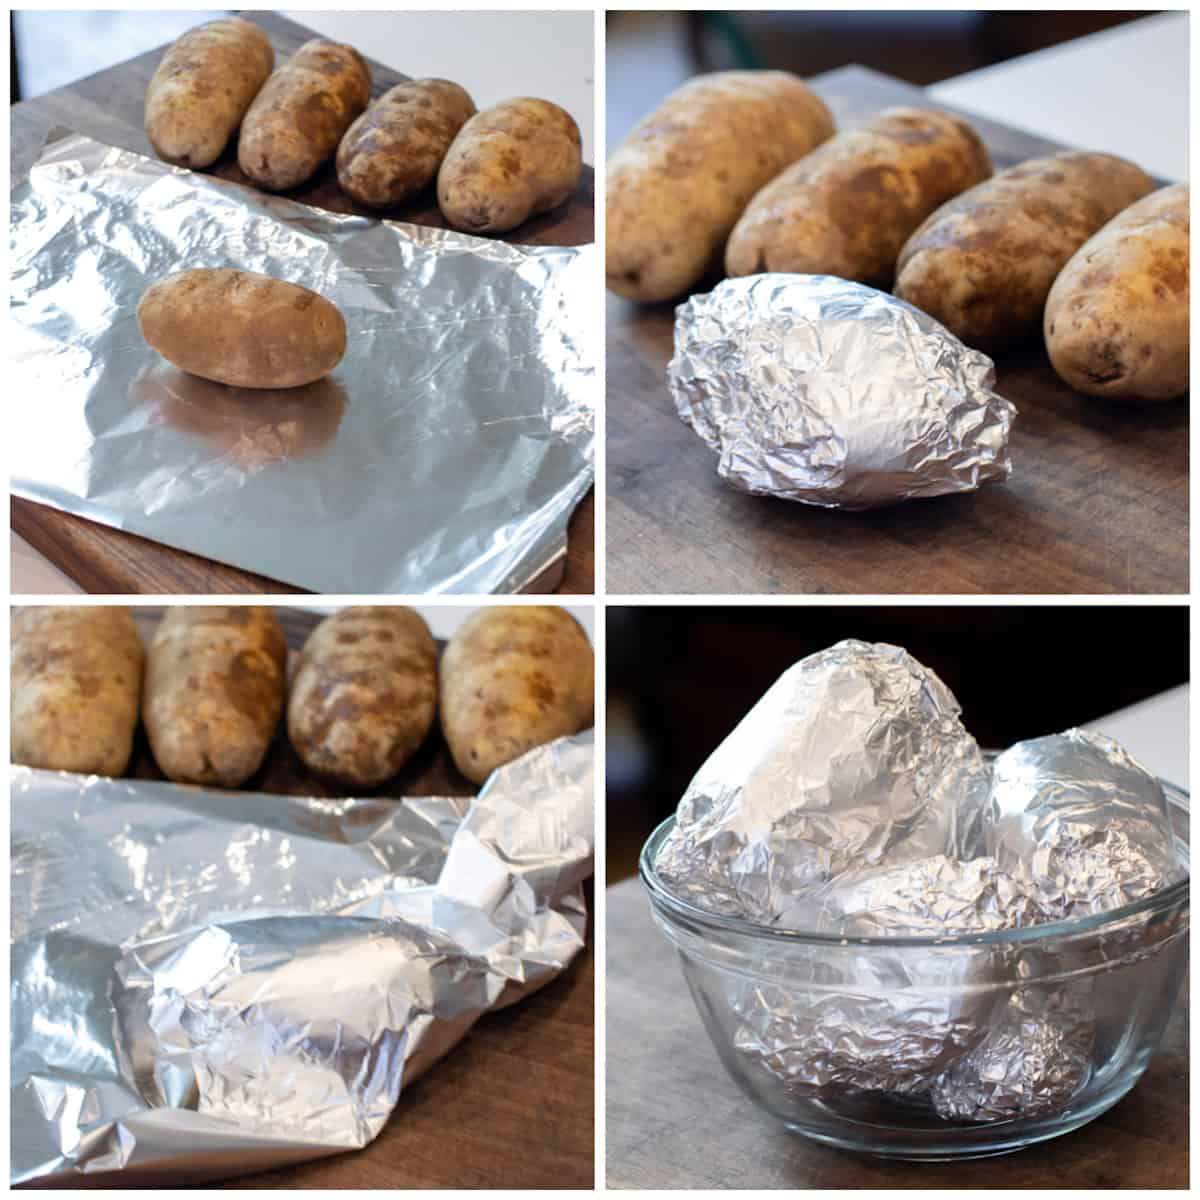 Four pictures showing how to wrap a whole potato in foil.